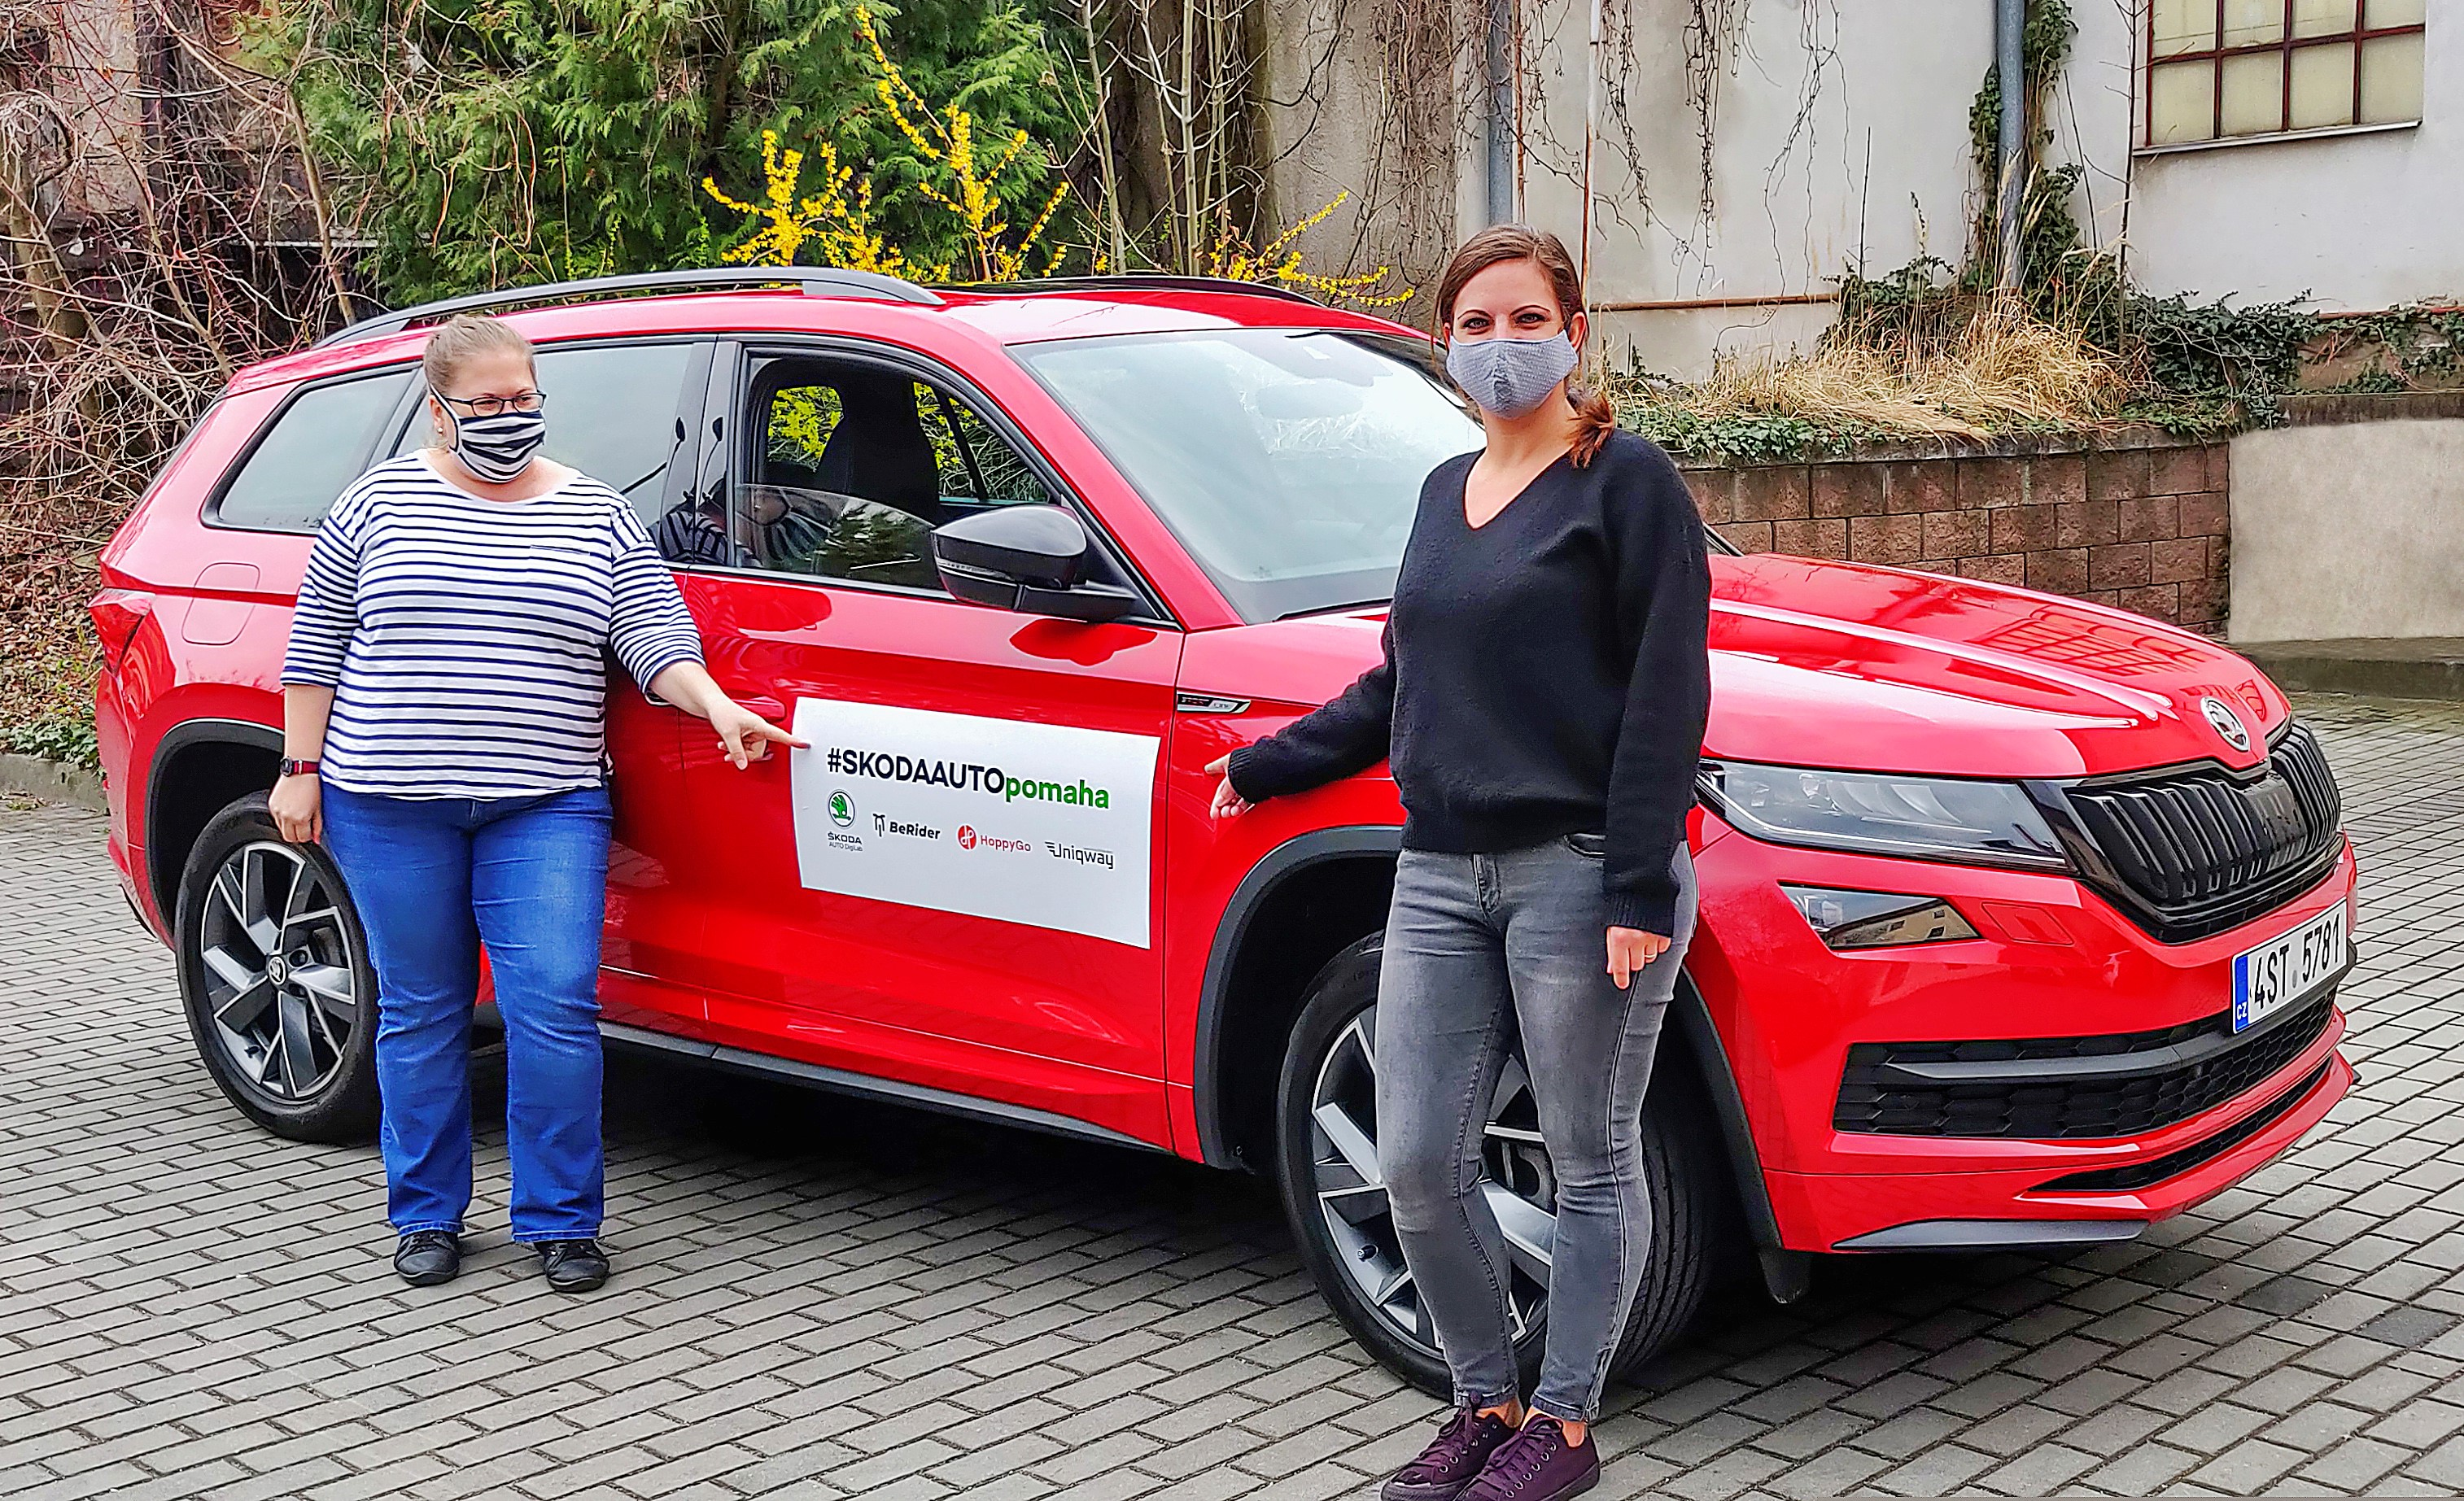 #SKODAAUTOhelps: SKODA AUTO is fully committed to combat the spread of the coronavirus - Image 2